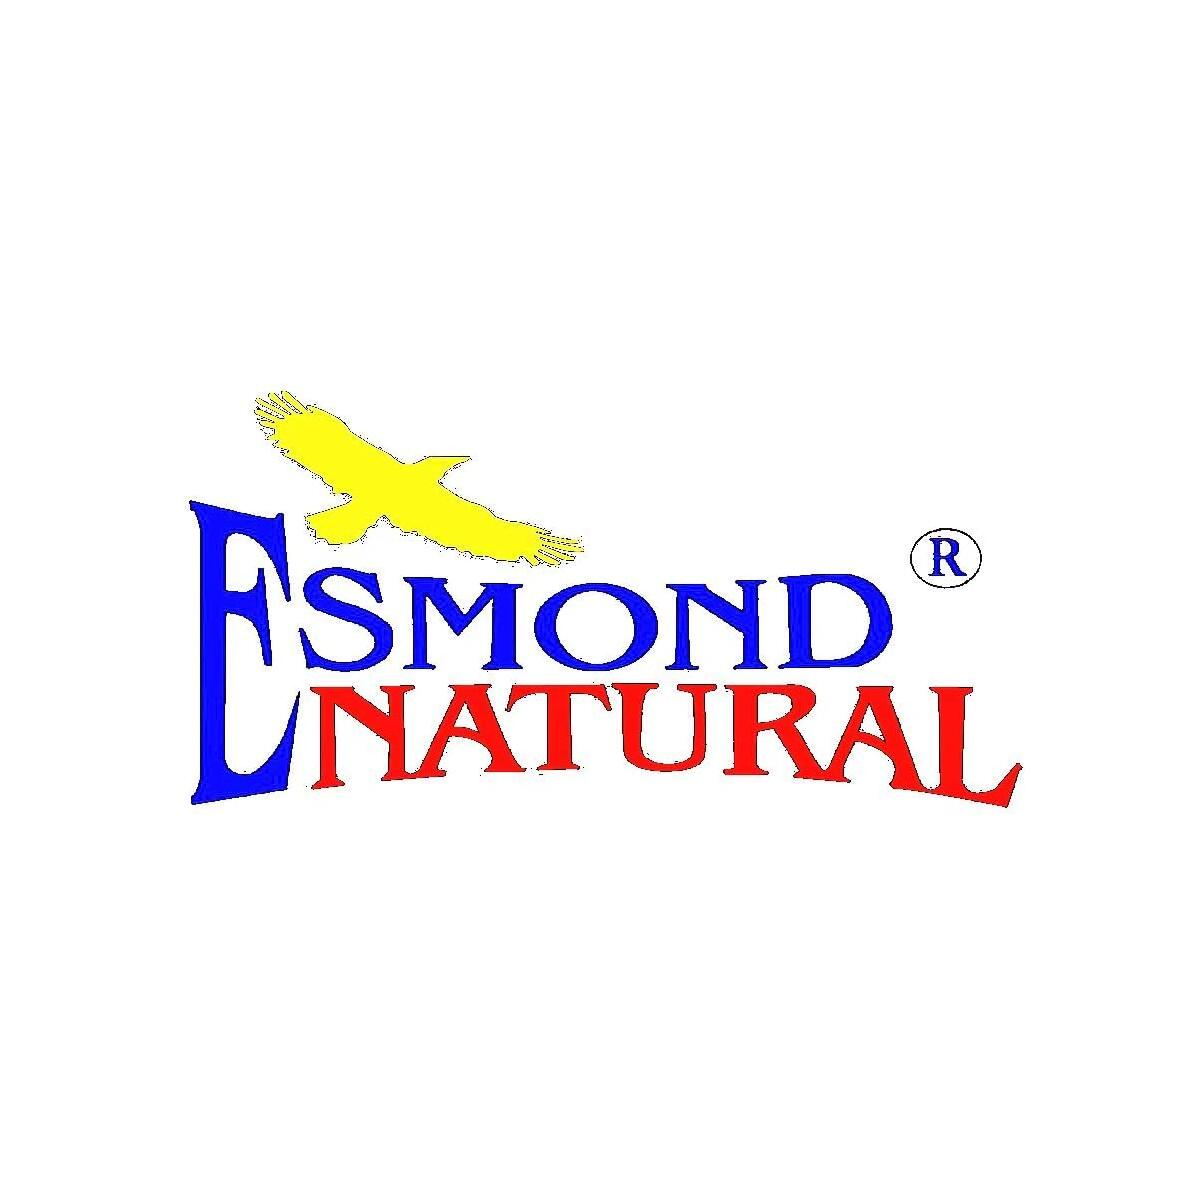 (3 Count, 10% Off) Esmond Natural: Children's Chewable Multivitamins with Vitamin C (Former Kiwi Fruit Complex), GMP, Natural Product Assn Certified, Made in USA-180 Tablets